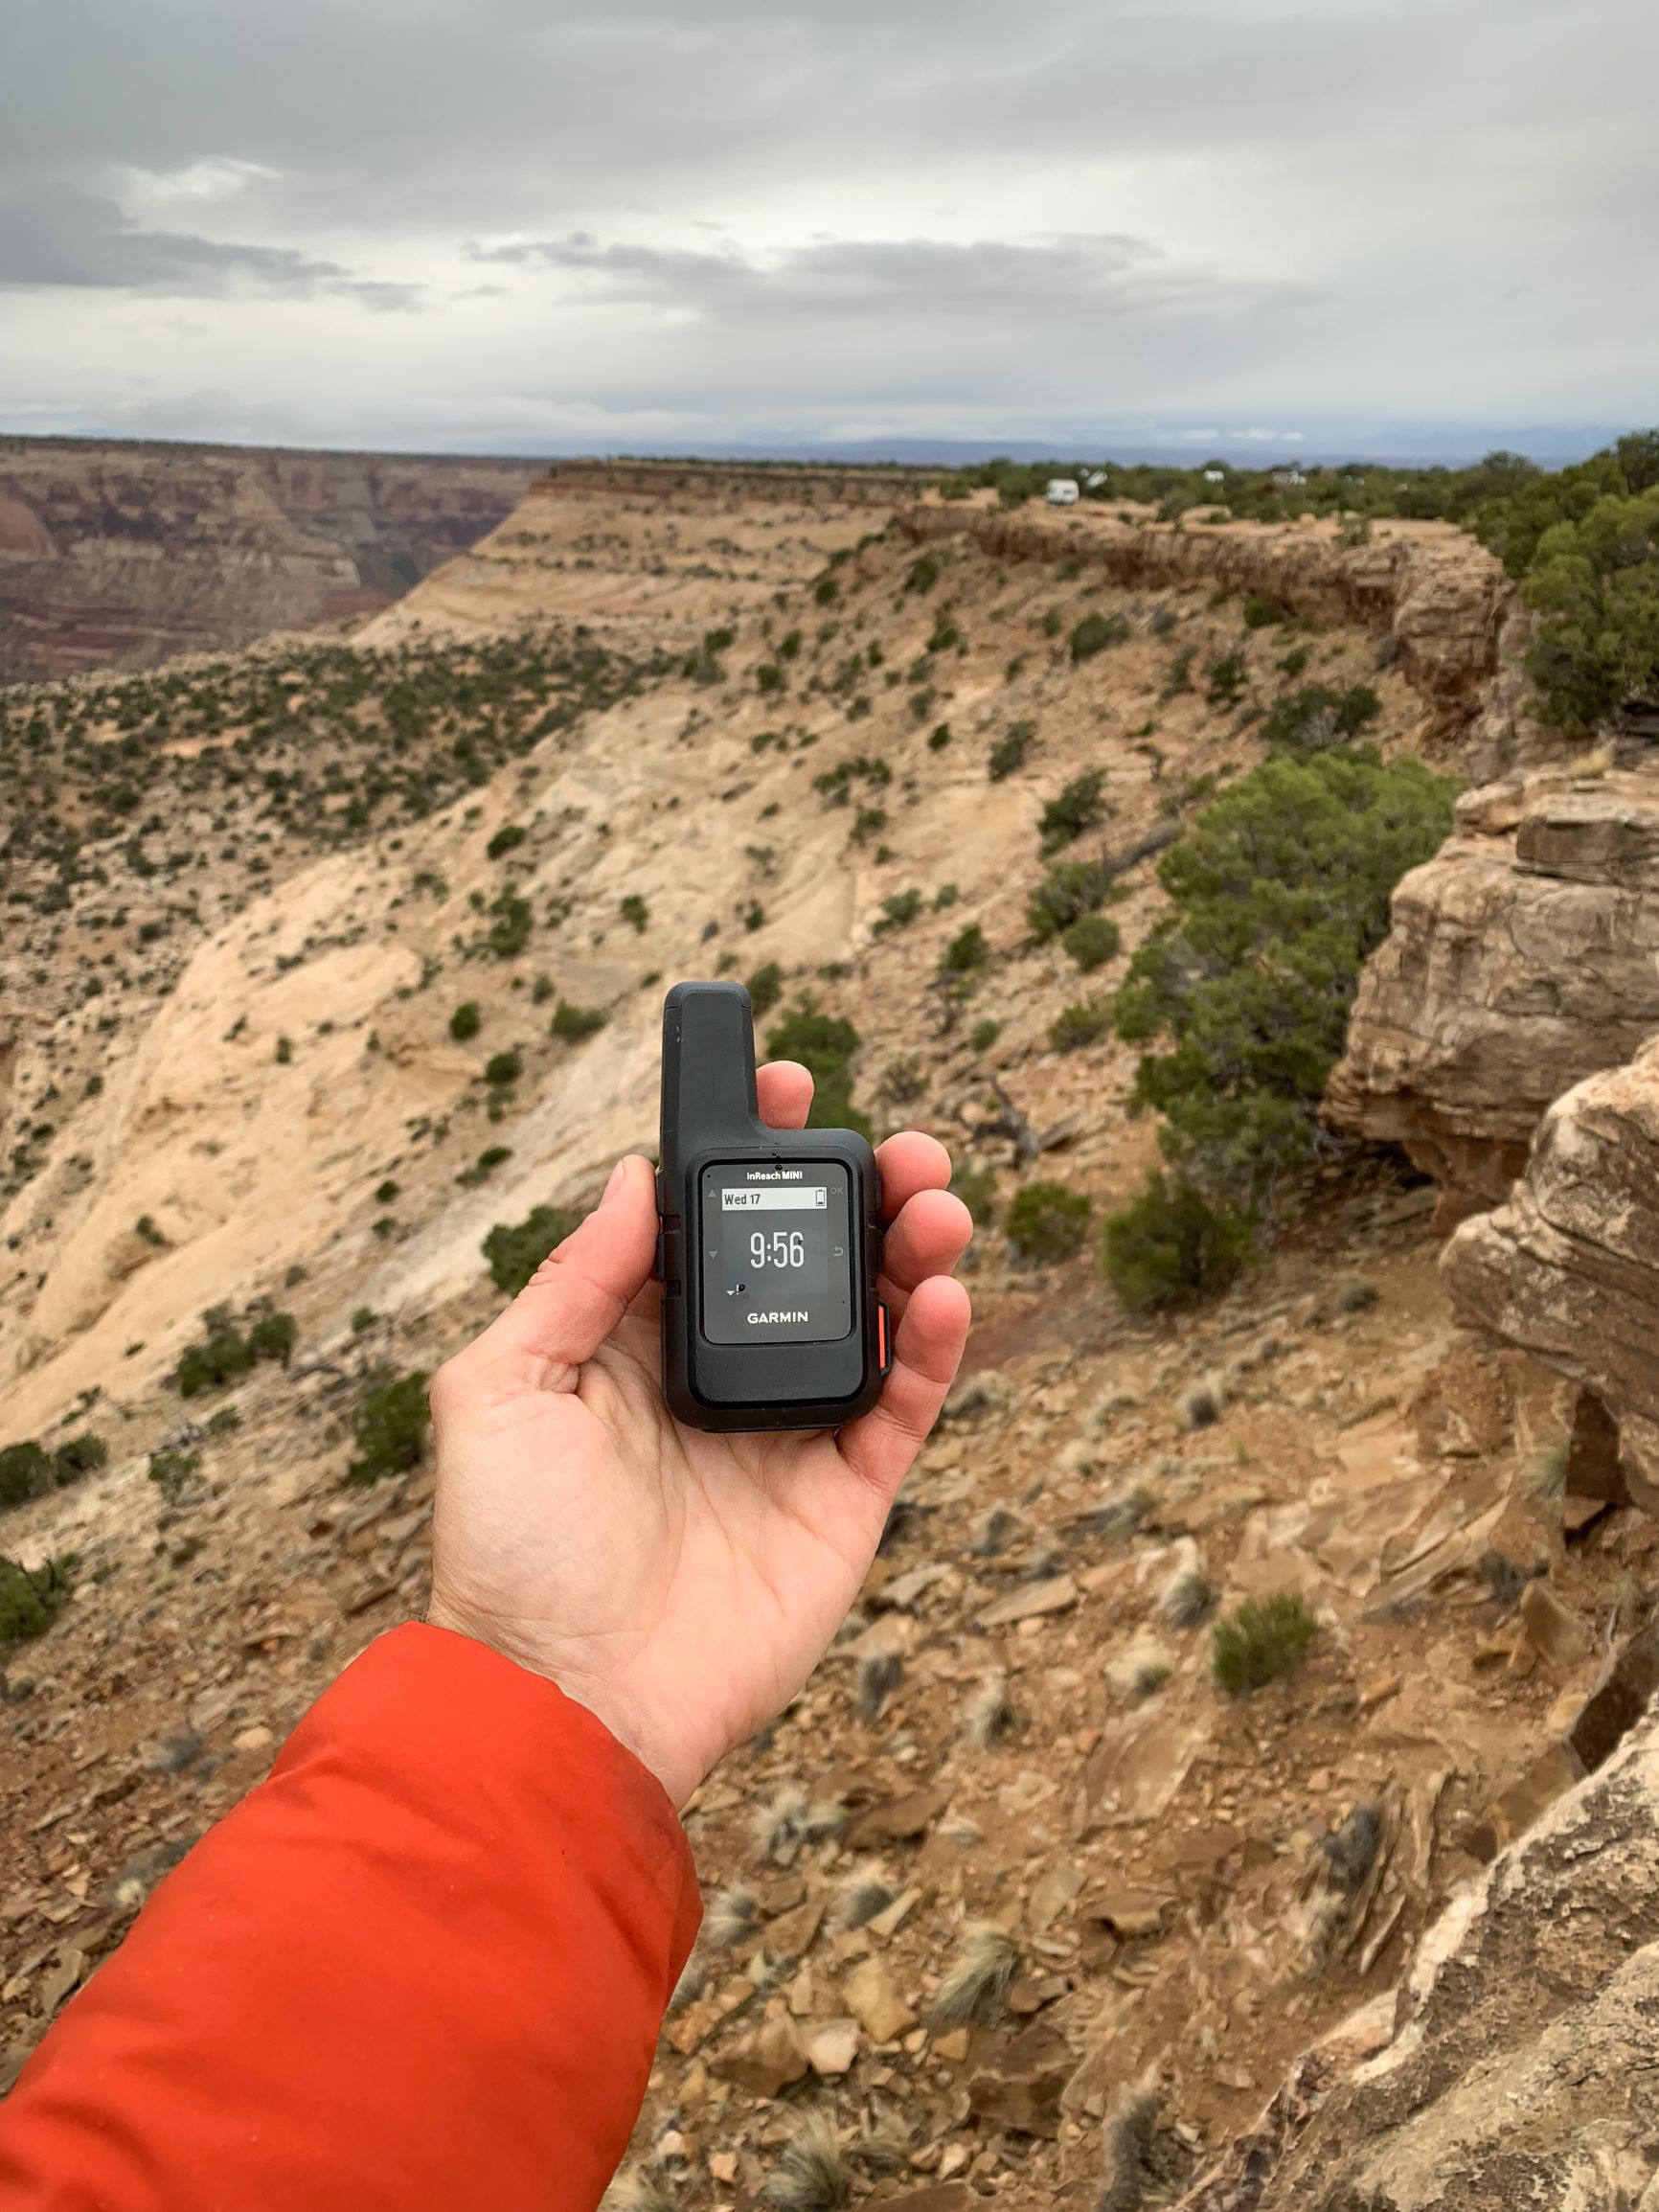 An outstretched arm holds a small Garmin device in their palm, with a scenic desert expanse beyond them.